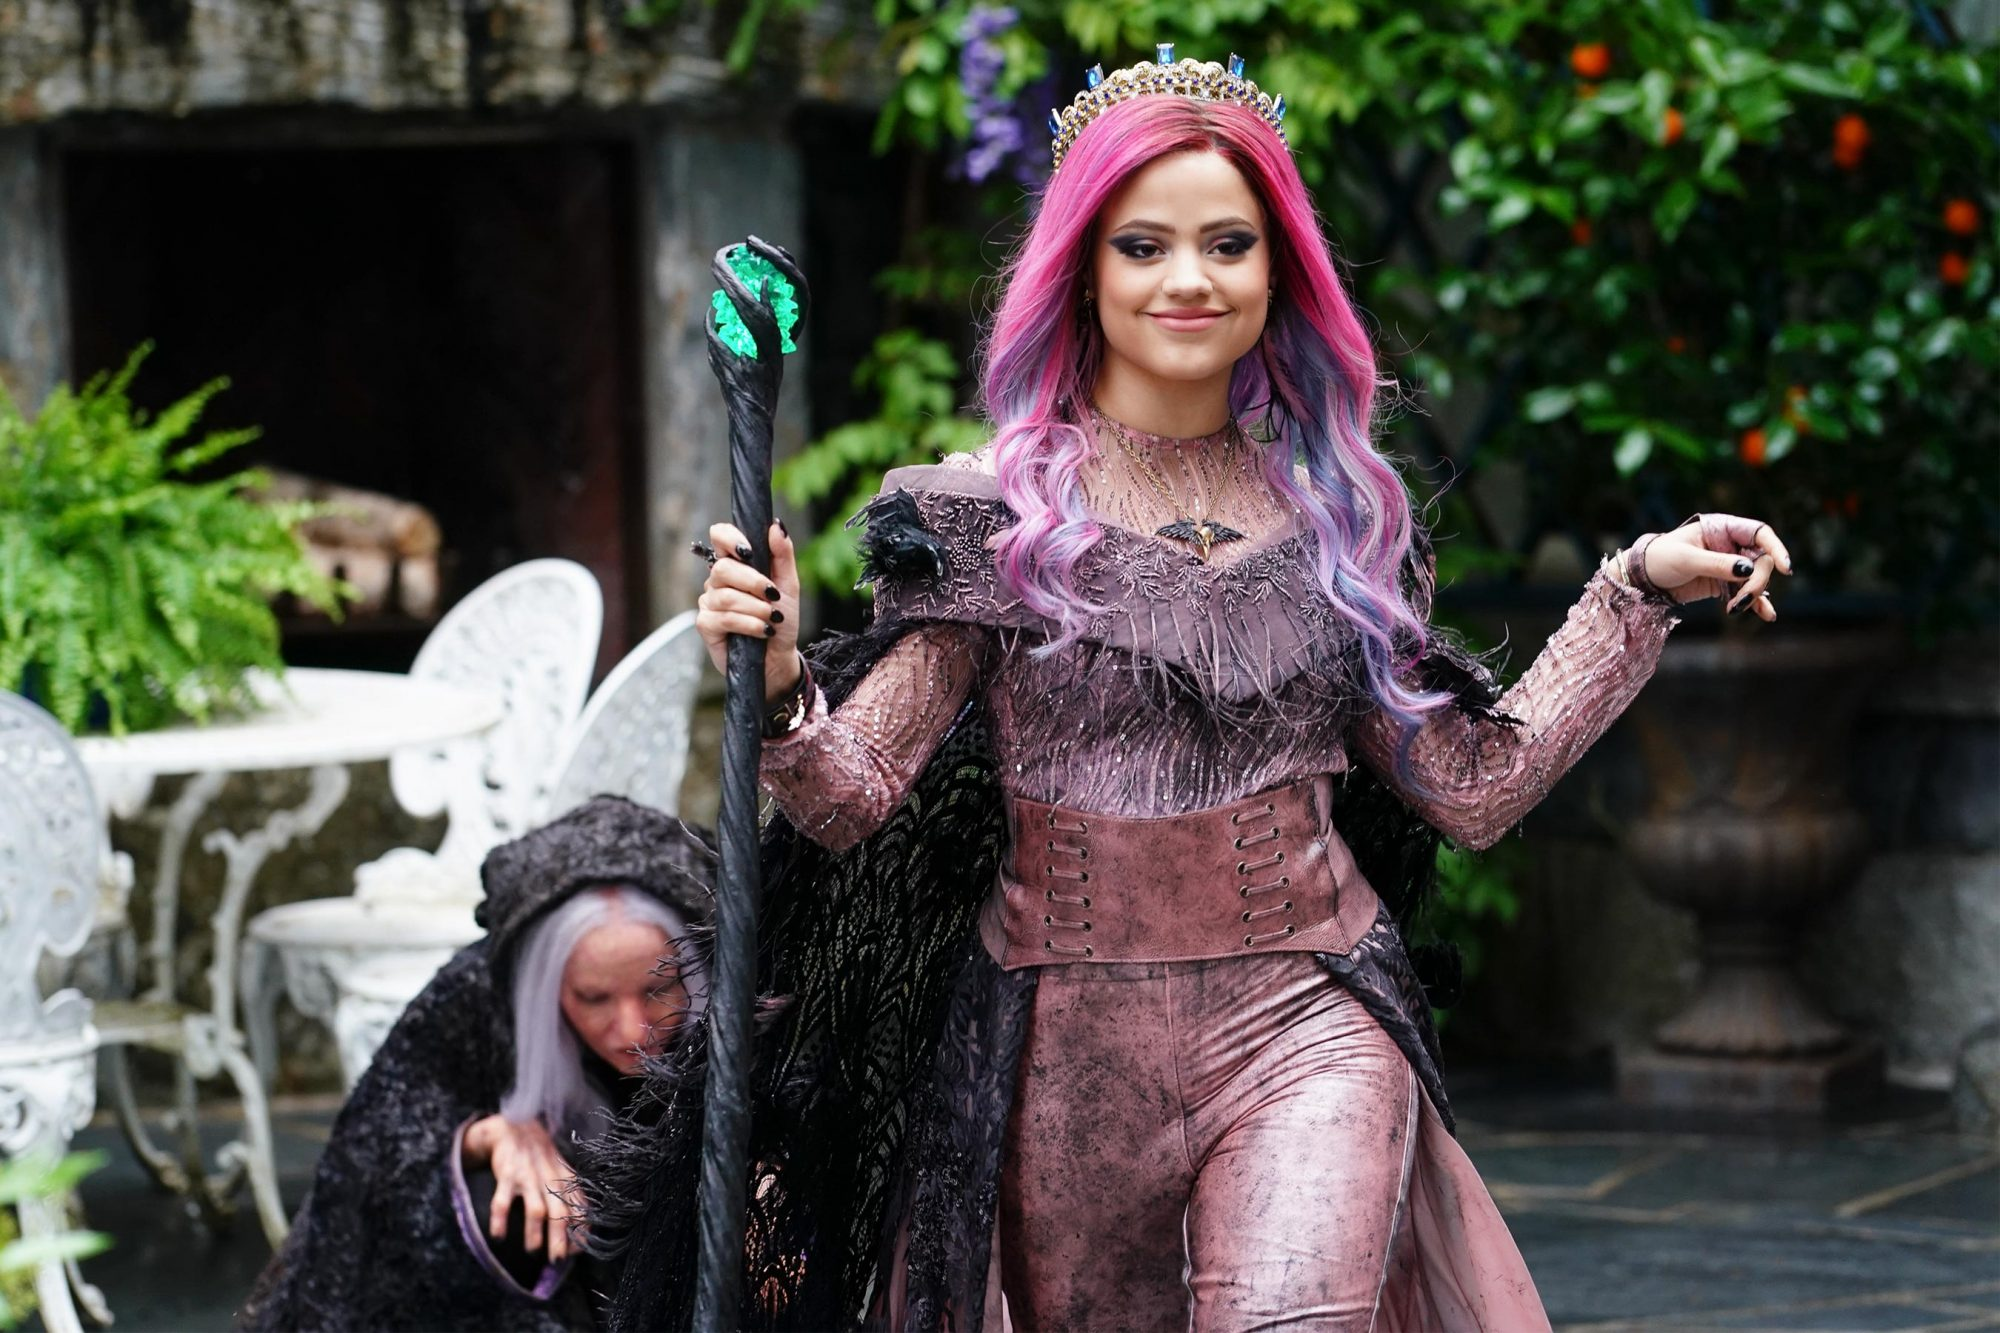 "DESCENDANTS 3 - This highly anticipated third installment in the global hit Disney Channel Original Movie franchise continues the contemporary saga of good versus evil as the teenage daughters and sons of Disney's most infamous villains-Mal, Evie, Carlos and Jay (also known as the villain kids or VKs)-return to the Isle of the Lost to recruit a new batch of villainous offspring to join them at Auradon Prep. When a barrier breach jeopardizes the safety of Auradon during their departure off the Isle, Mal resolves to permanently close the barrier, fearing that nemeses Uma and Hades will wreak vengeance on the kingdom. Despite her decision, an unfathomable dark force threatens the people of Auradon and it's up to Mal and the VKs to save everyone in their most epic battle yet. ""Descendants 3"" is set to premiere on FRIDAY, AUG. 2 (8:00-10:00 p.m. EDT), on Disney Channel and DisneyNOW. (Disney Channel/David Bukach) SARAH JEFFERY"